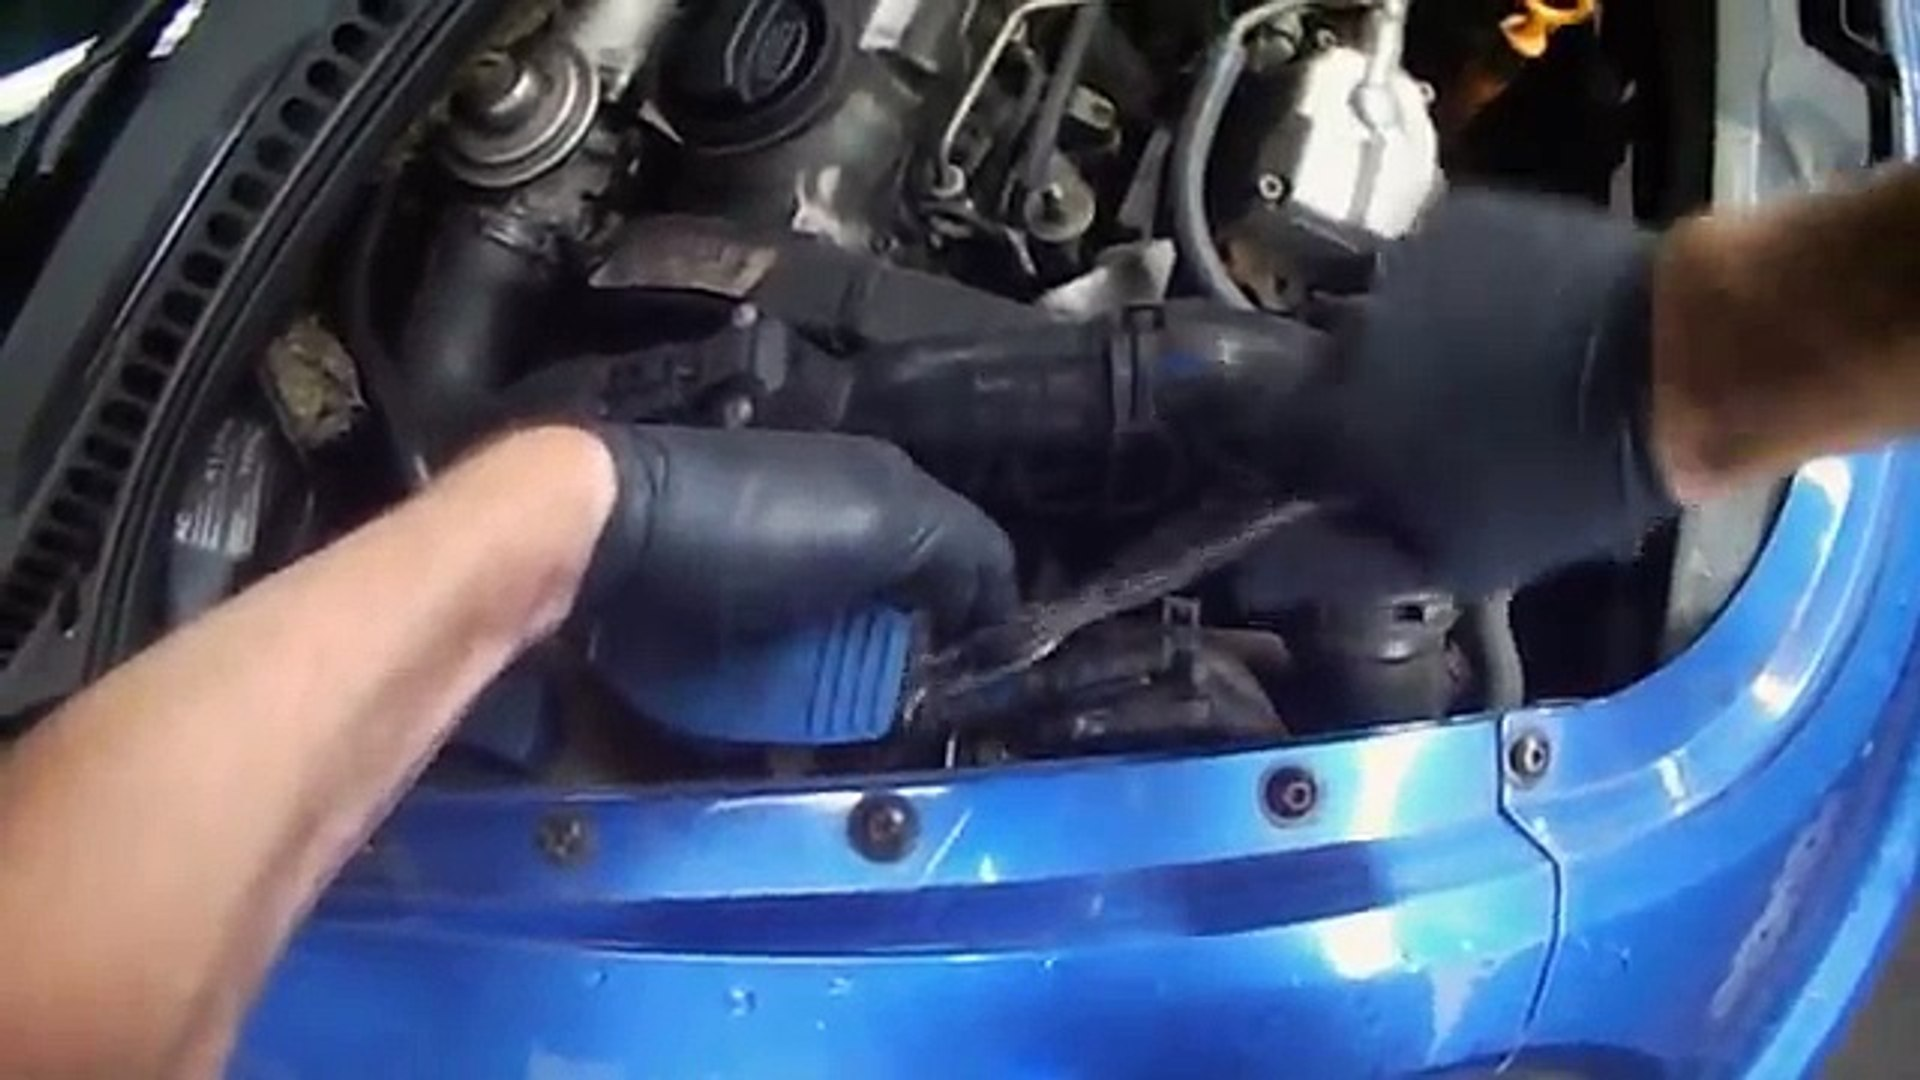 VW A4: New Beetle ALH TDI Fuel Filter replacement